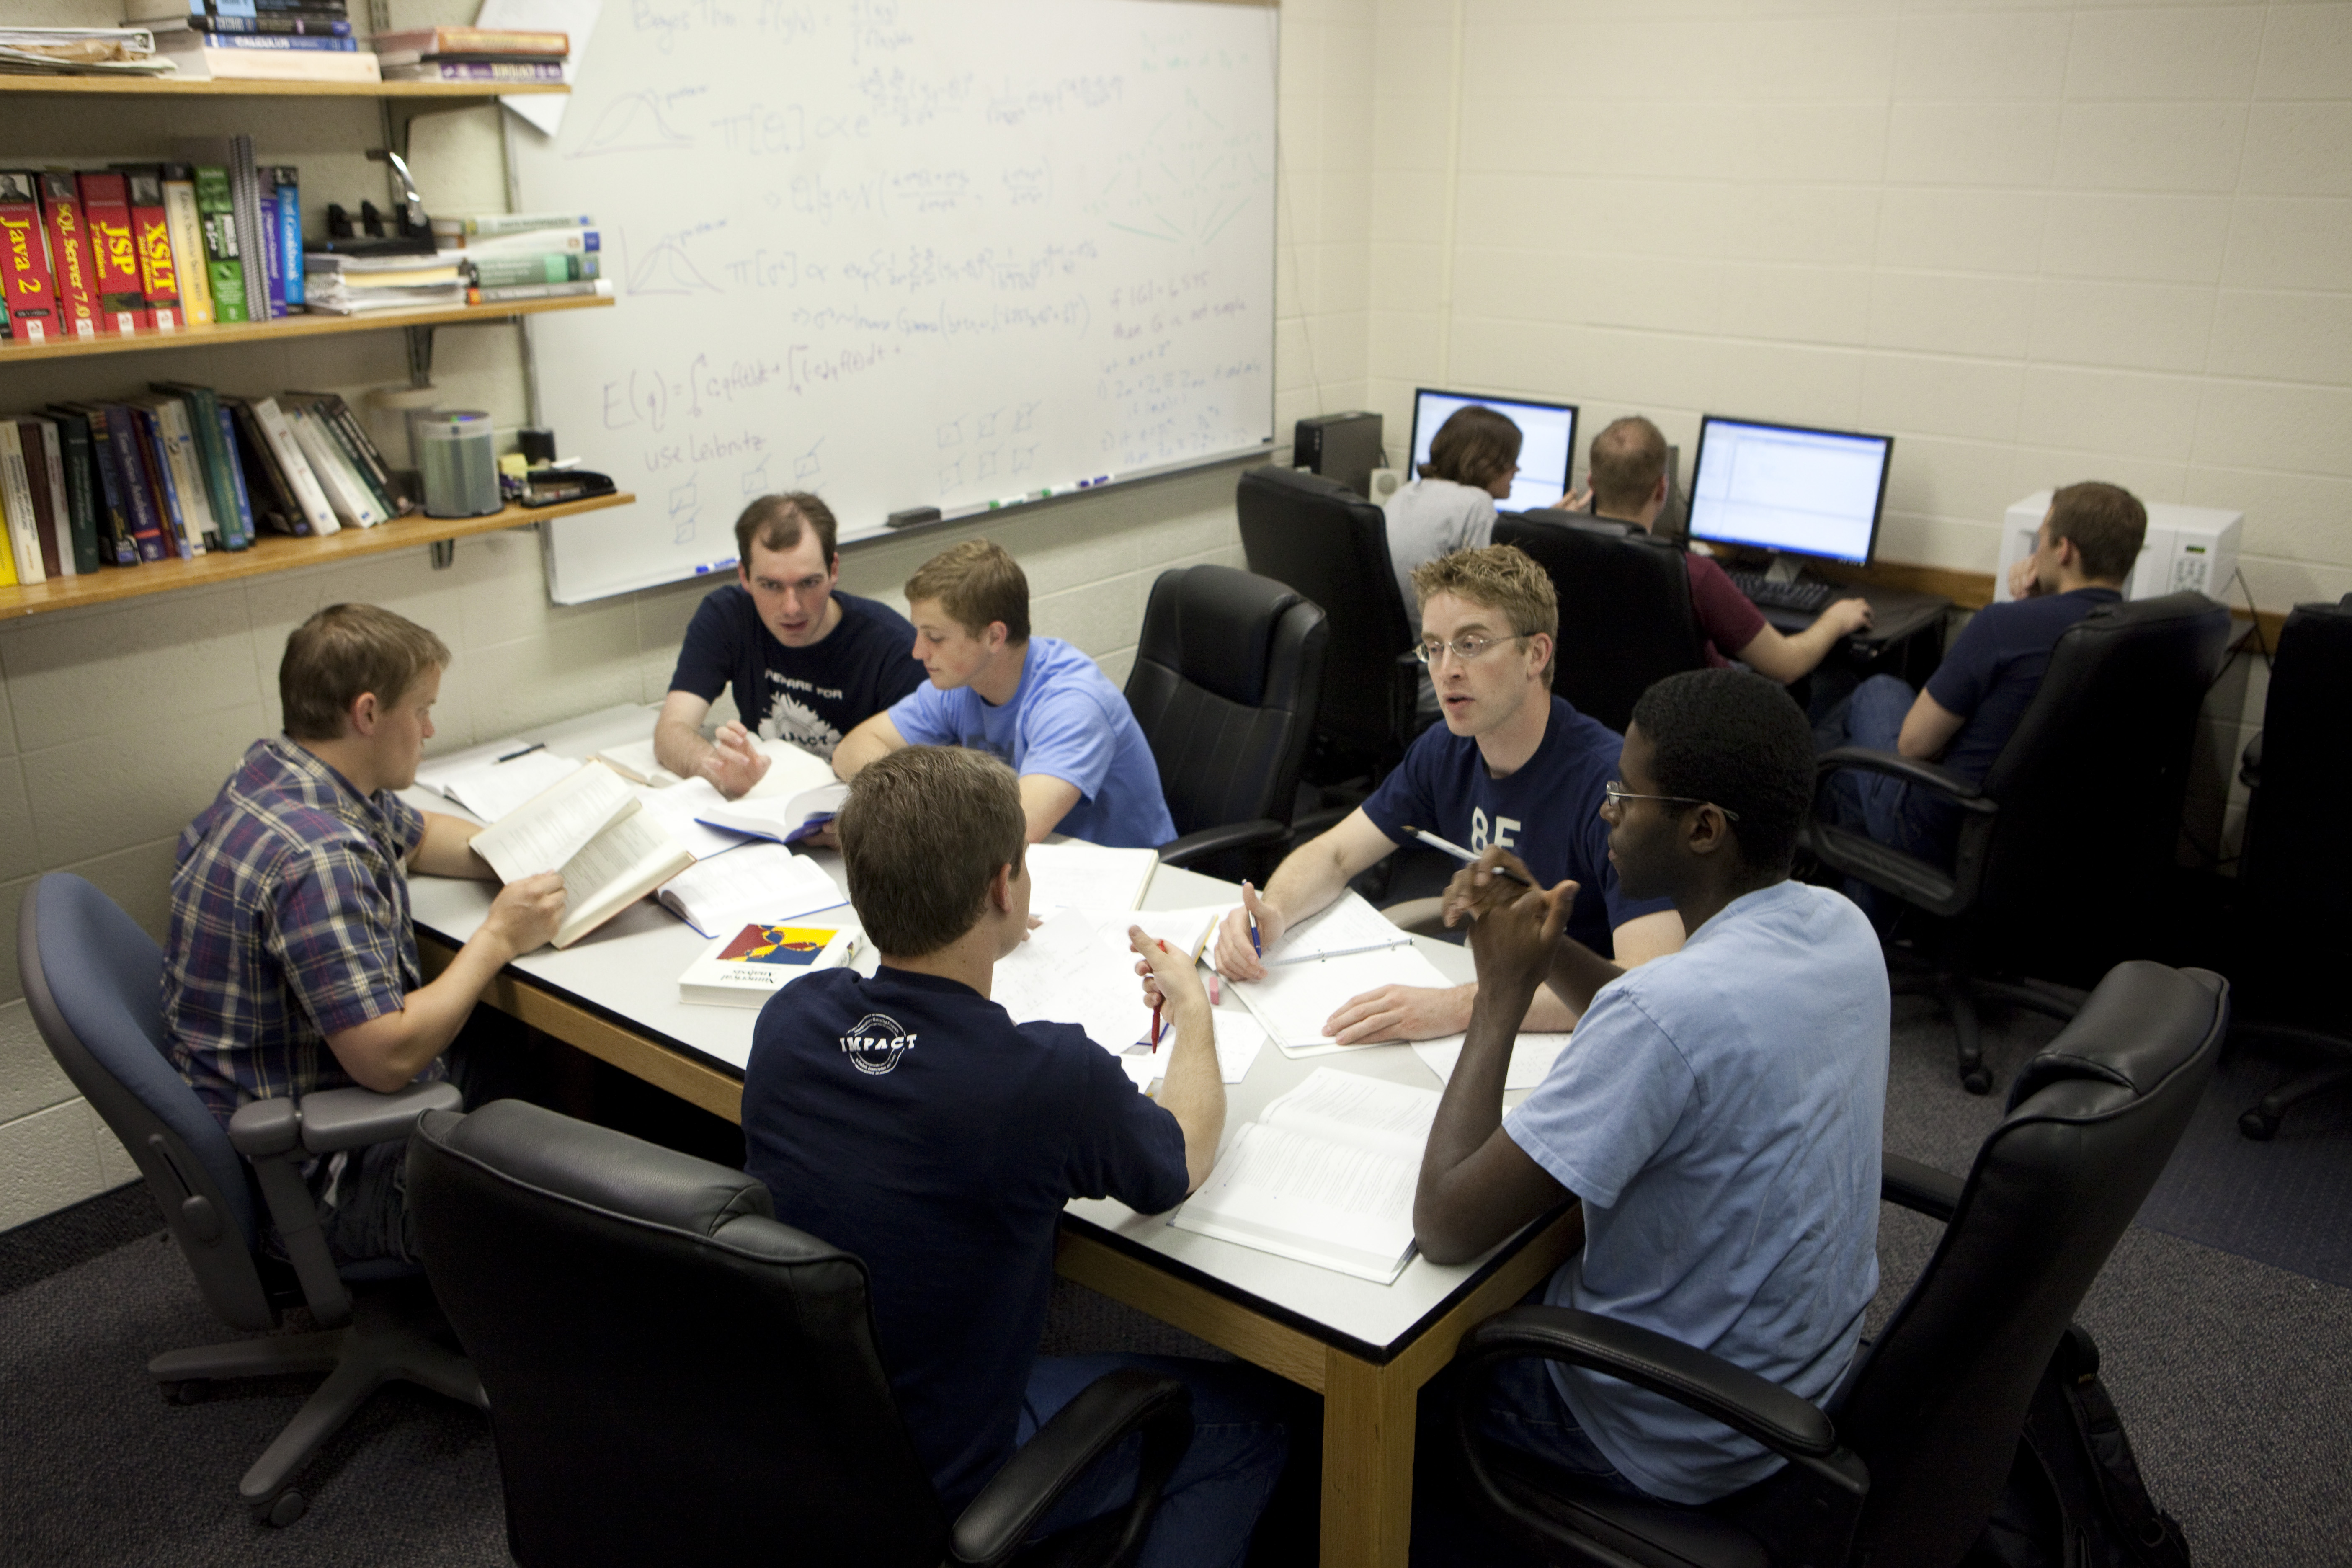 Students in the IMPACT program working on assignments and computer labs by Jaren Wilkey/BYU.